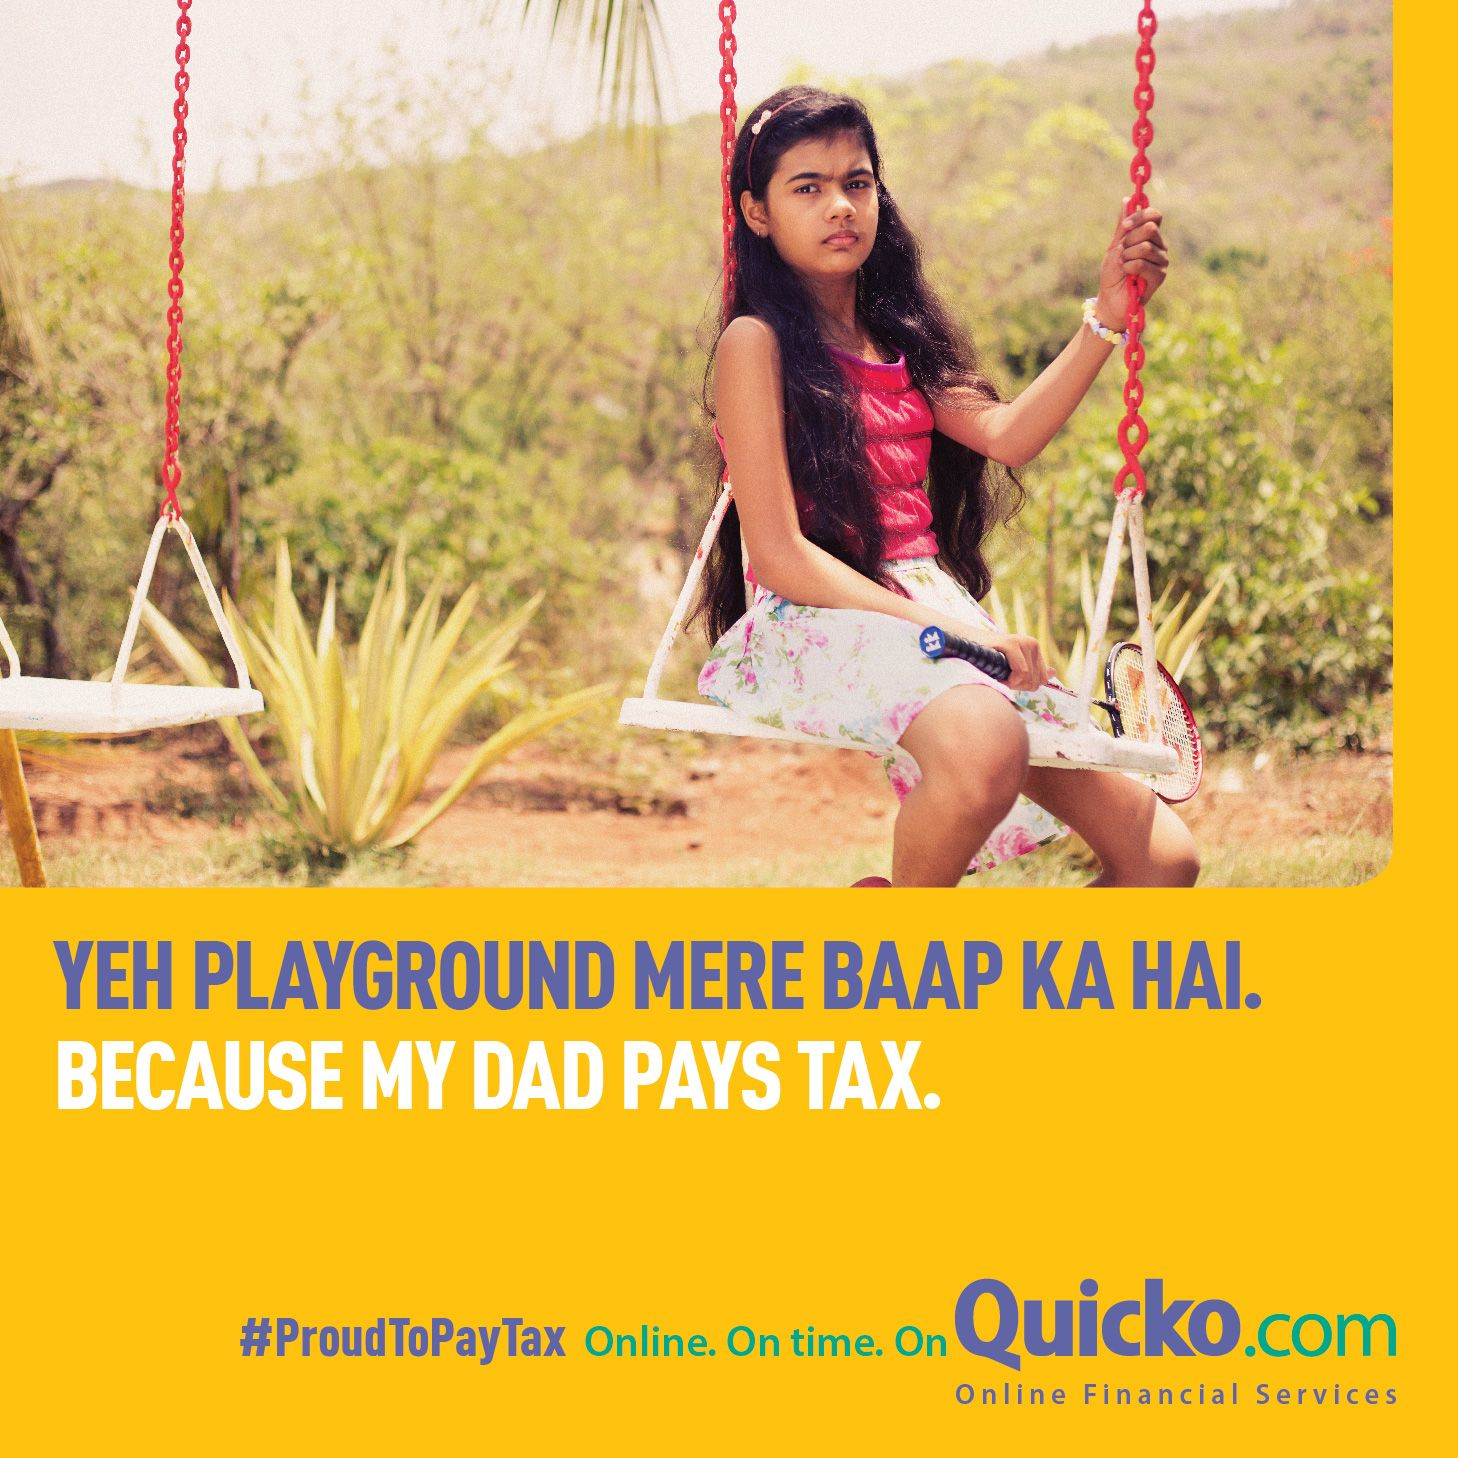 Playground Mere Baap ka Hai Proud To Pay Tax Quicko